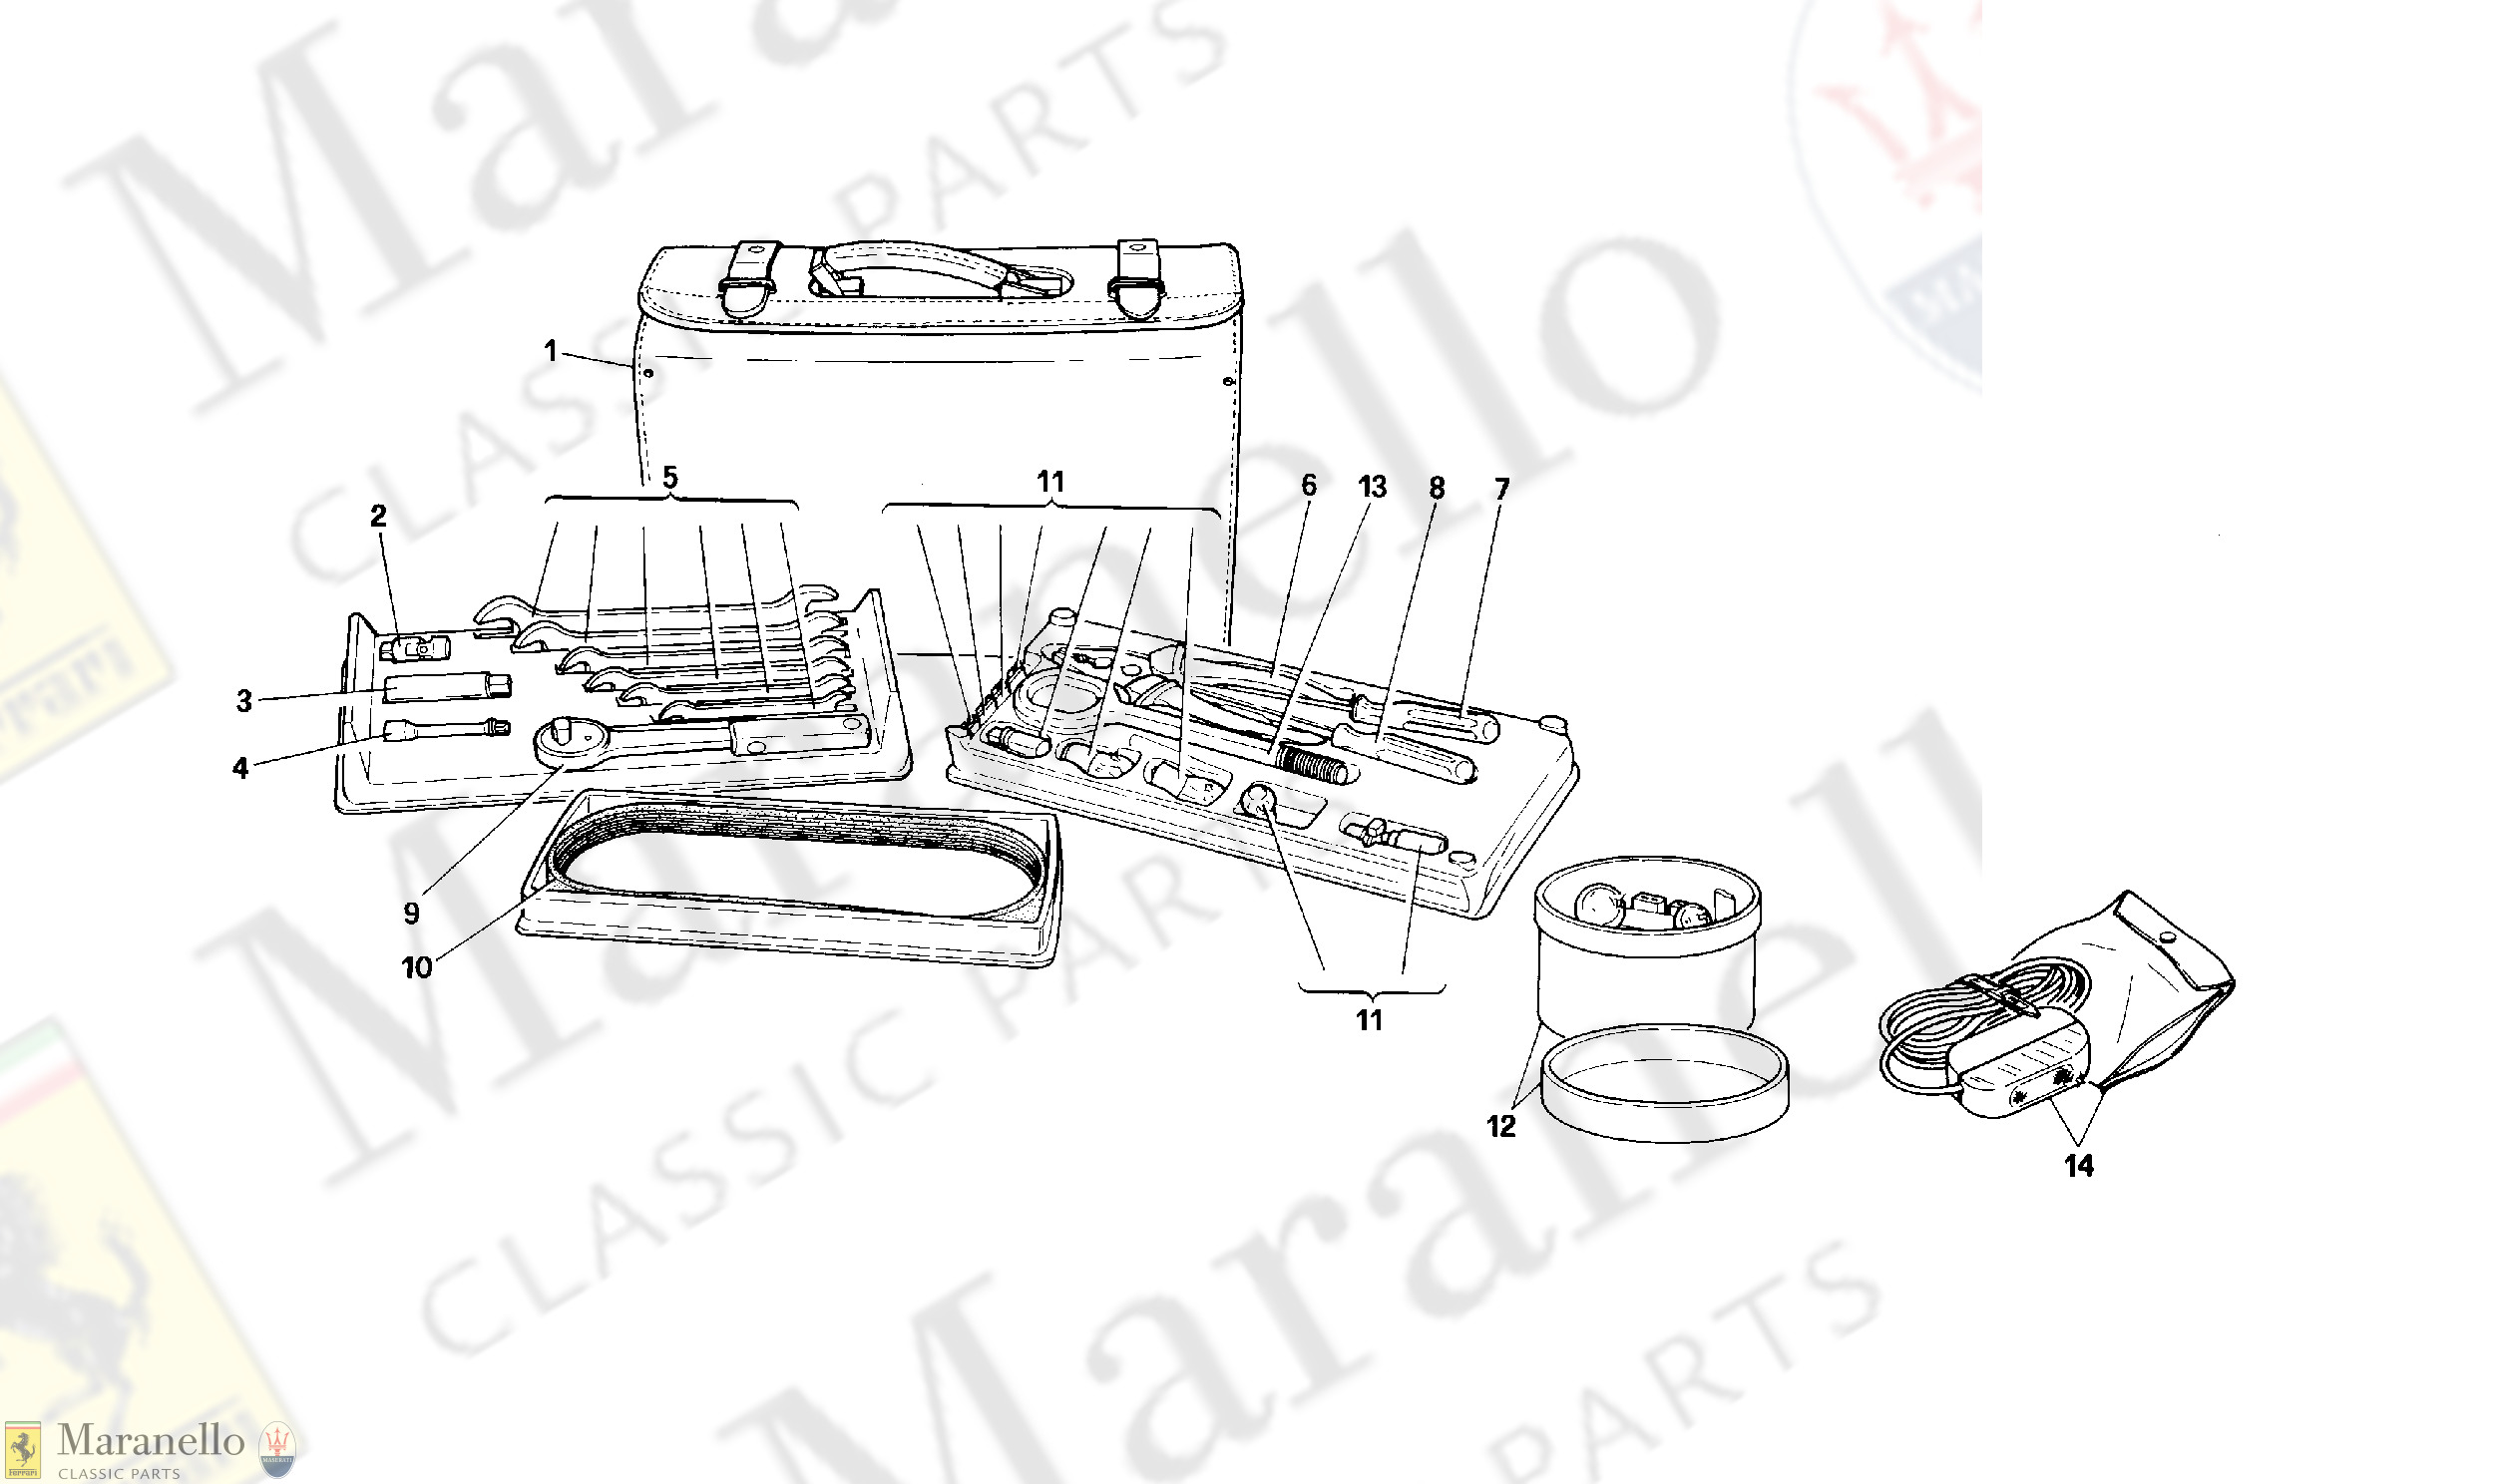 049 - TOOLS EQUIPMENT